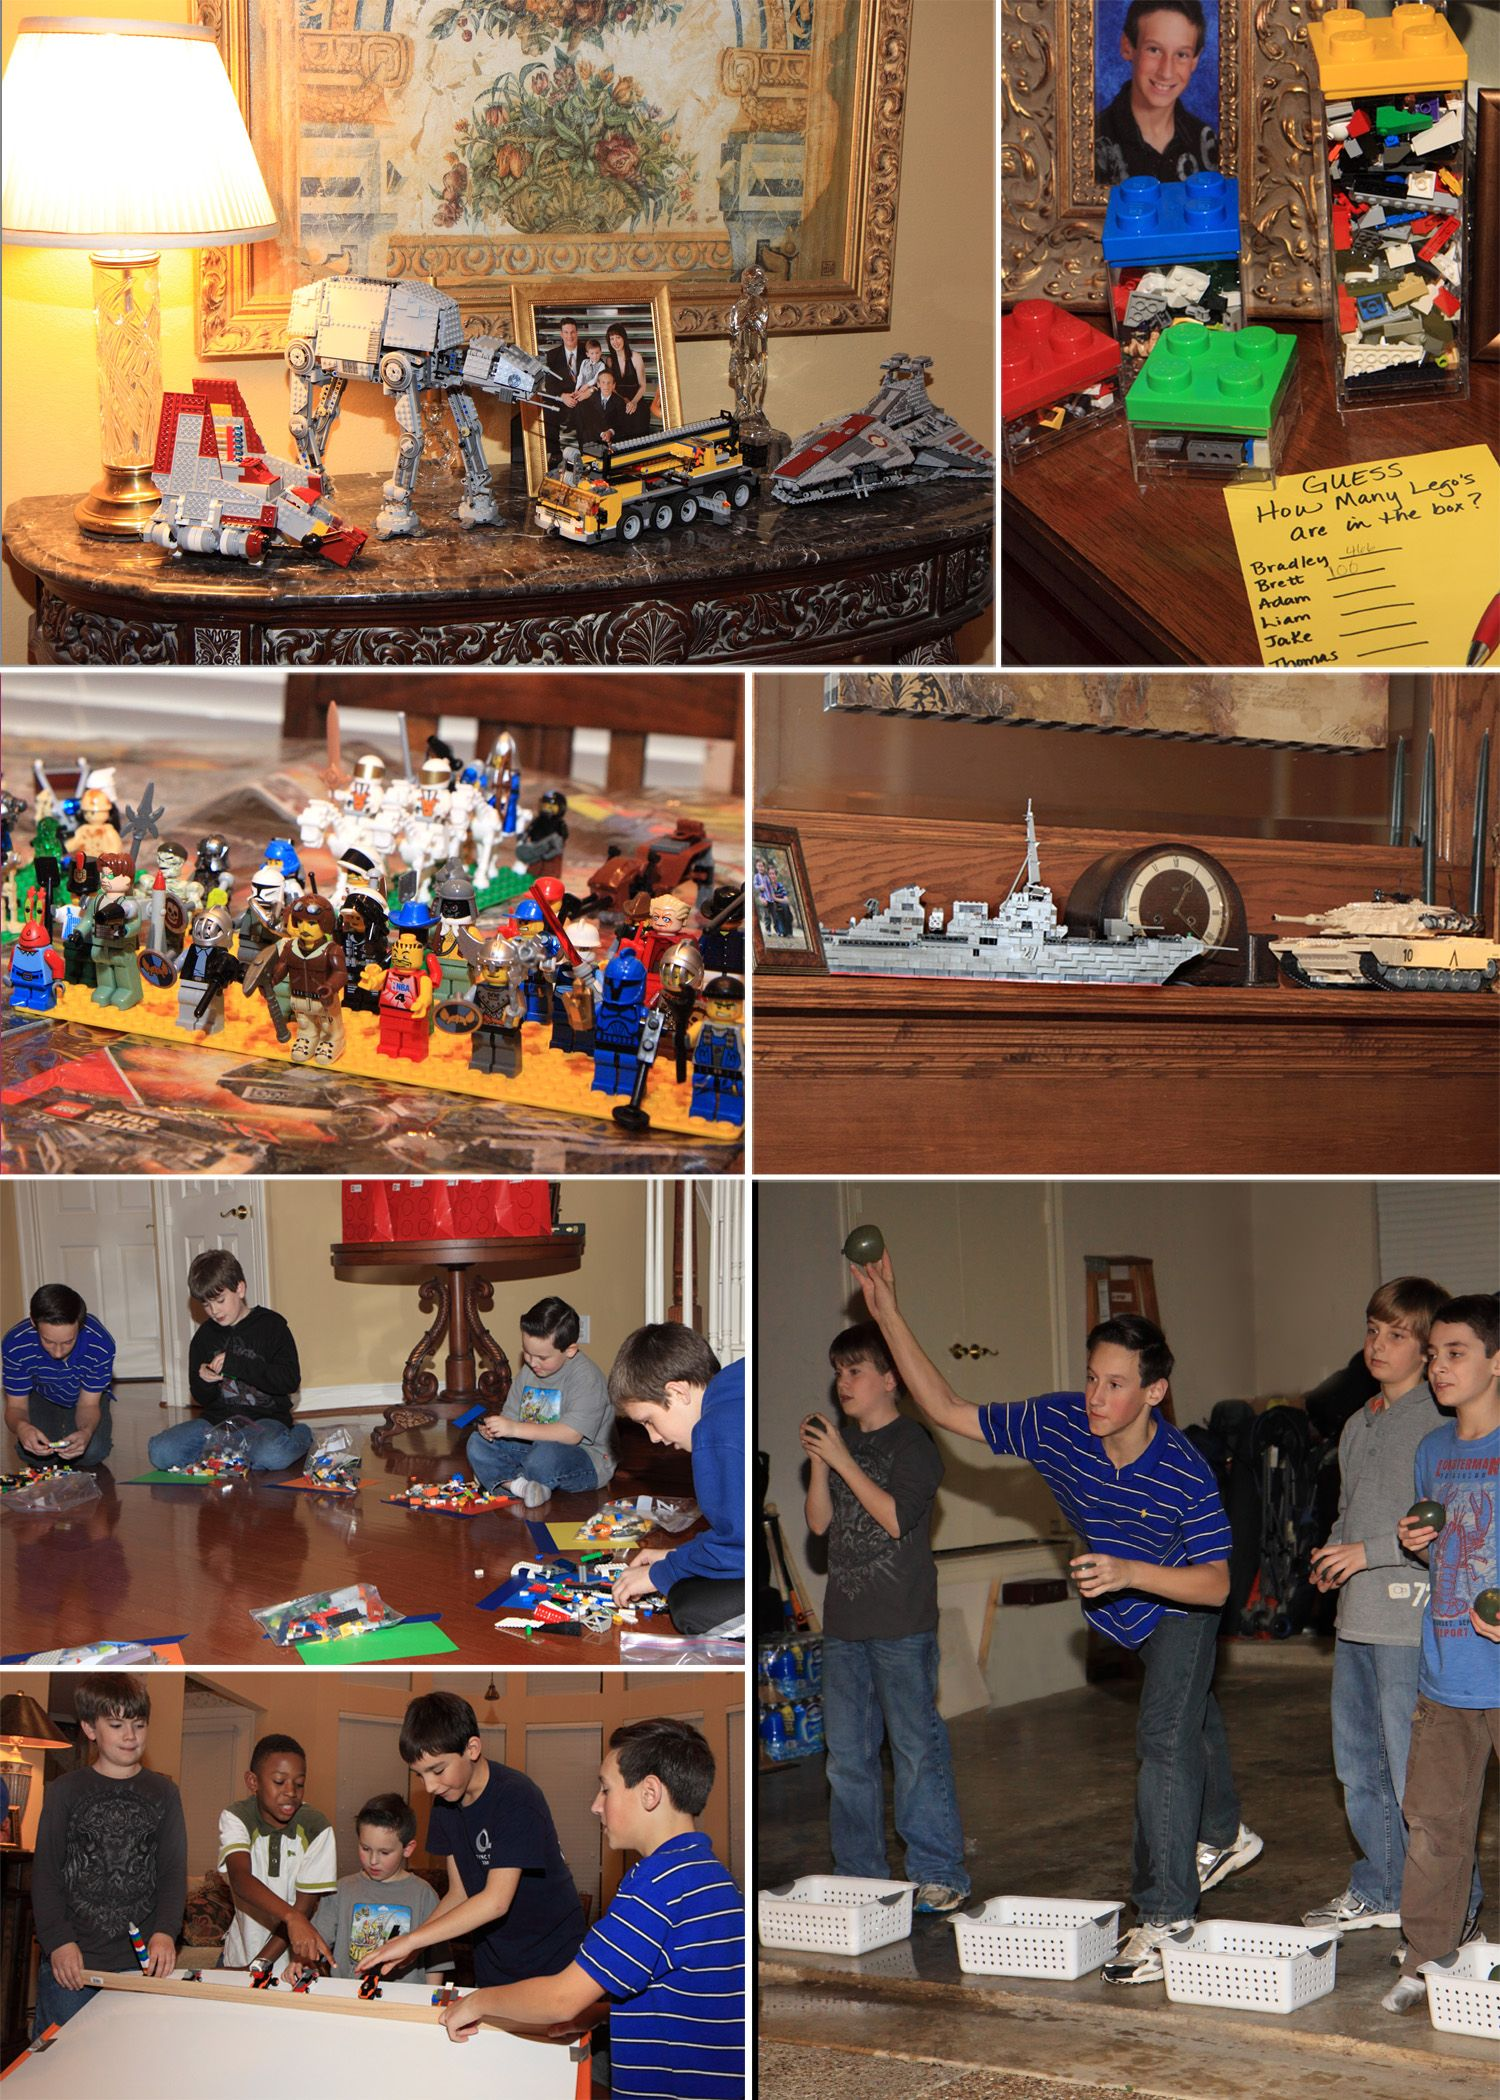 An 11YearOld Boy's Lego Birthday Party Submit an Entry